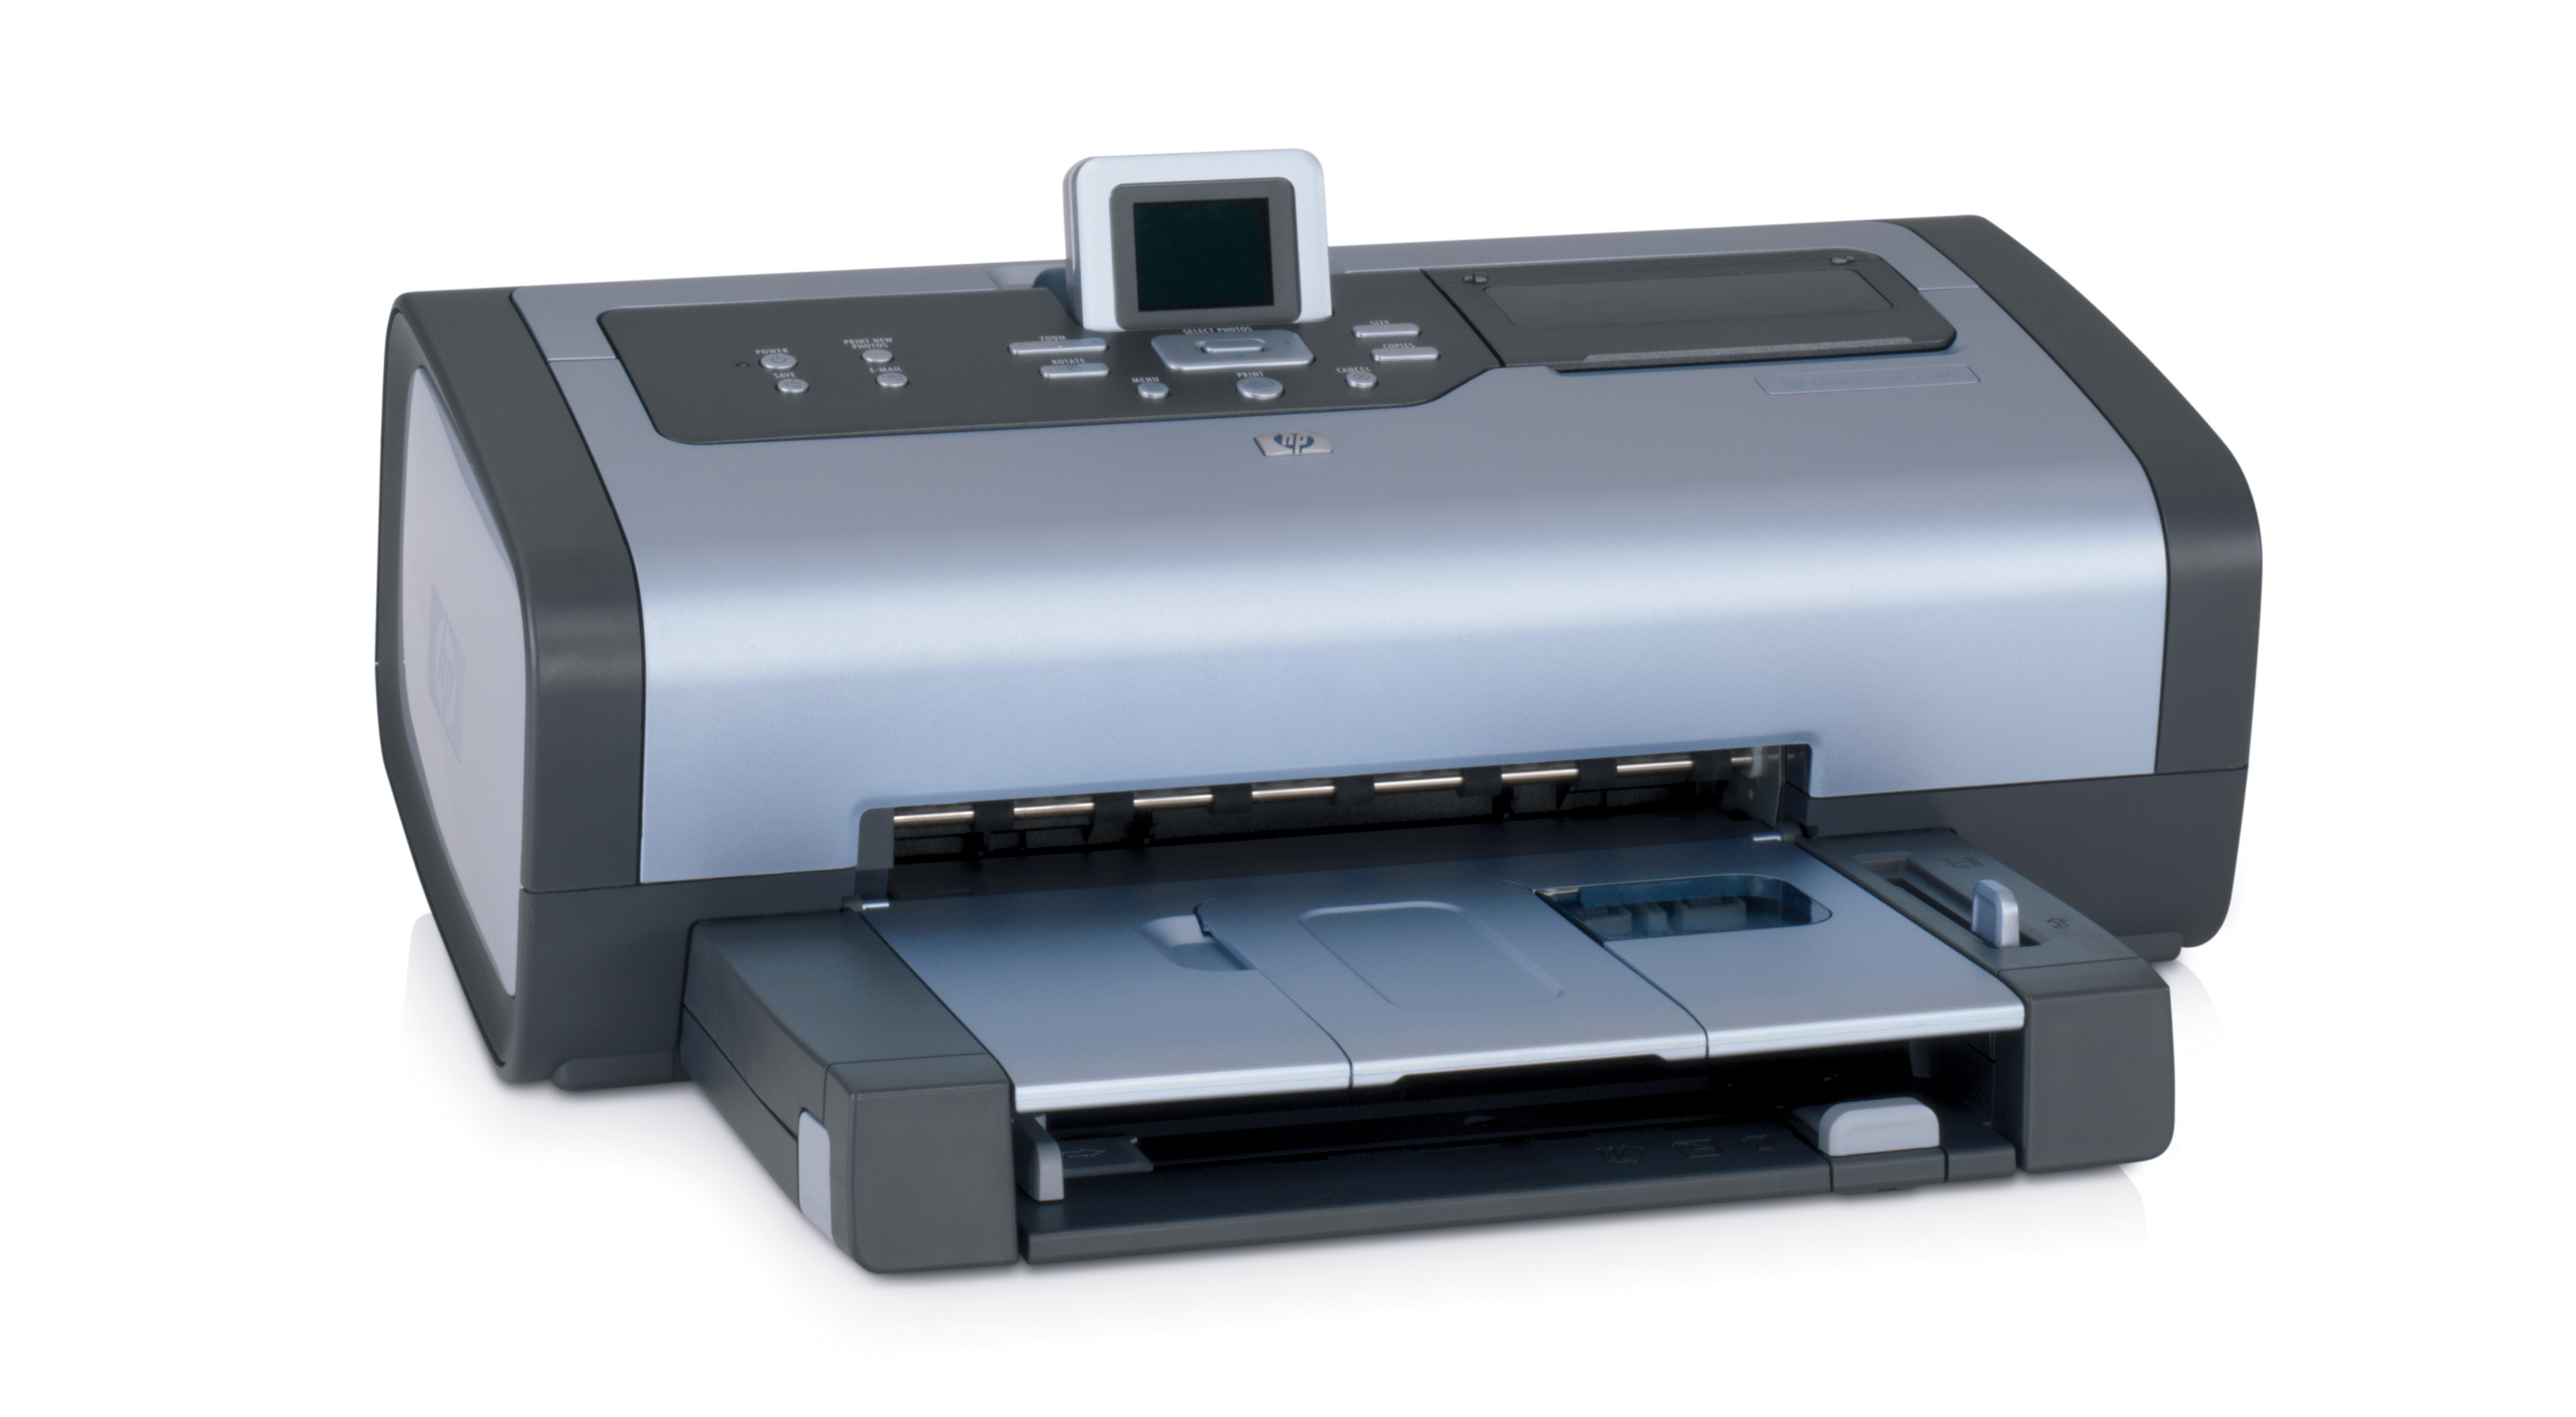 HP Photosmart 7760 A4 Colour InkJet Printer Q3015A#ABW - Refurbished